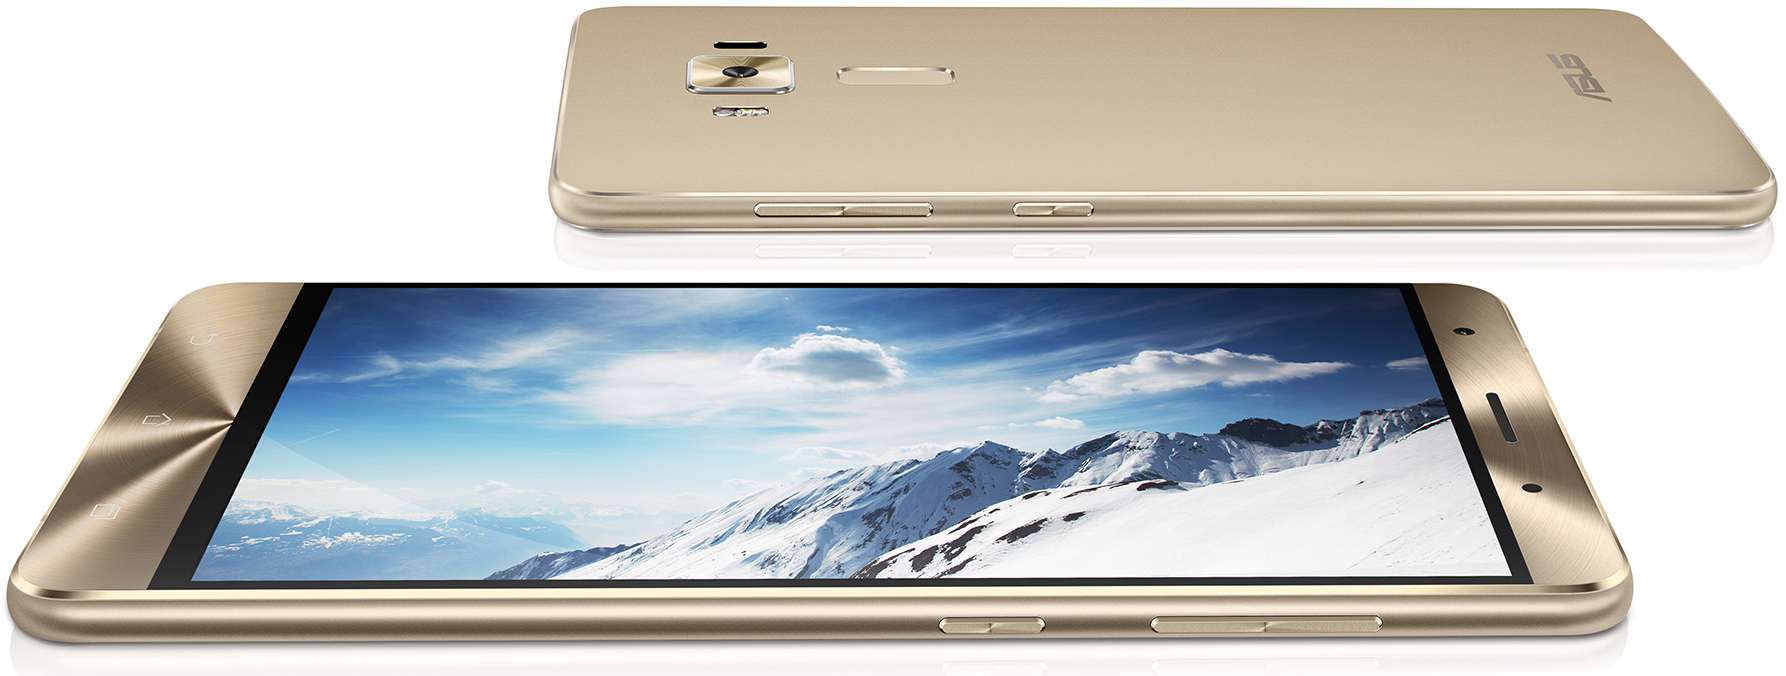 Launch Update: ASUS ZenFone 3, Zenbook 3, ZenWatch 3, ZenPad